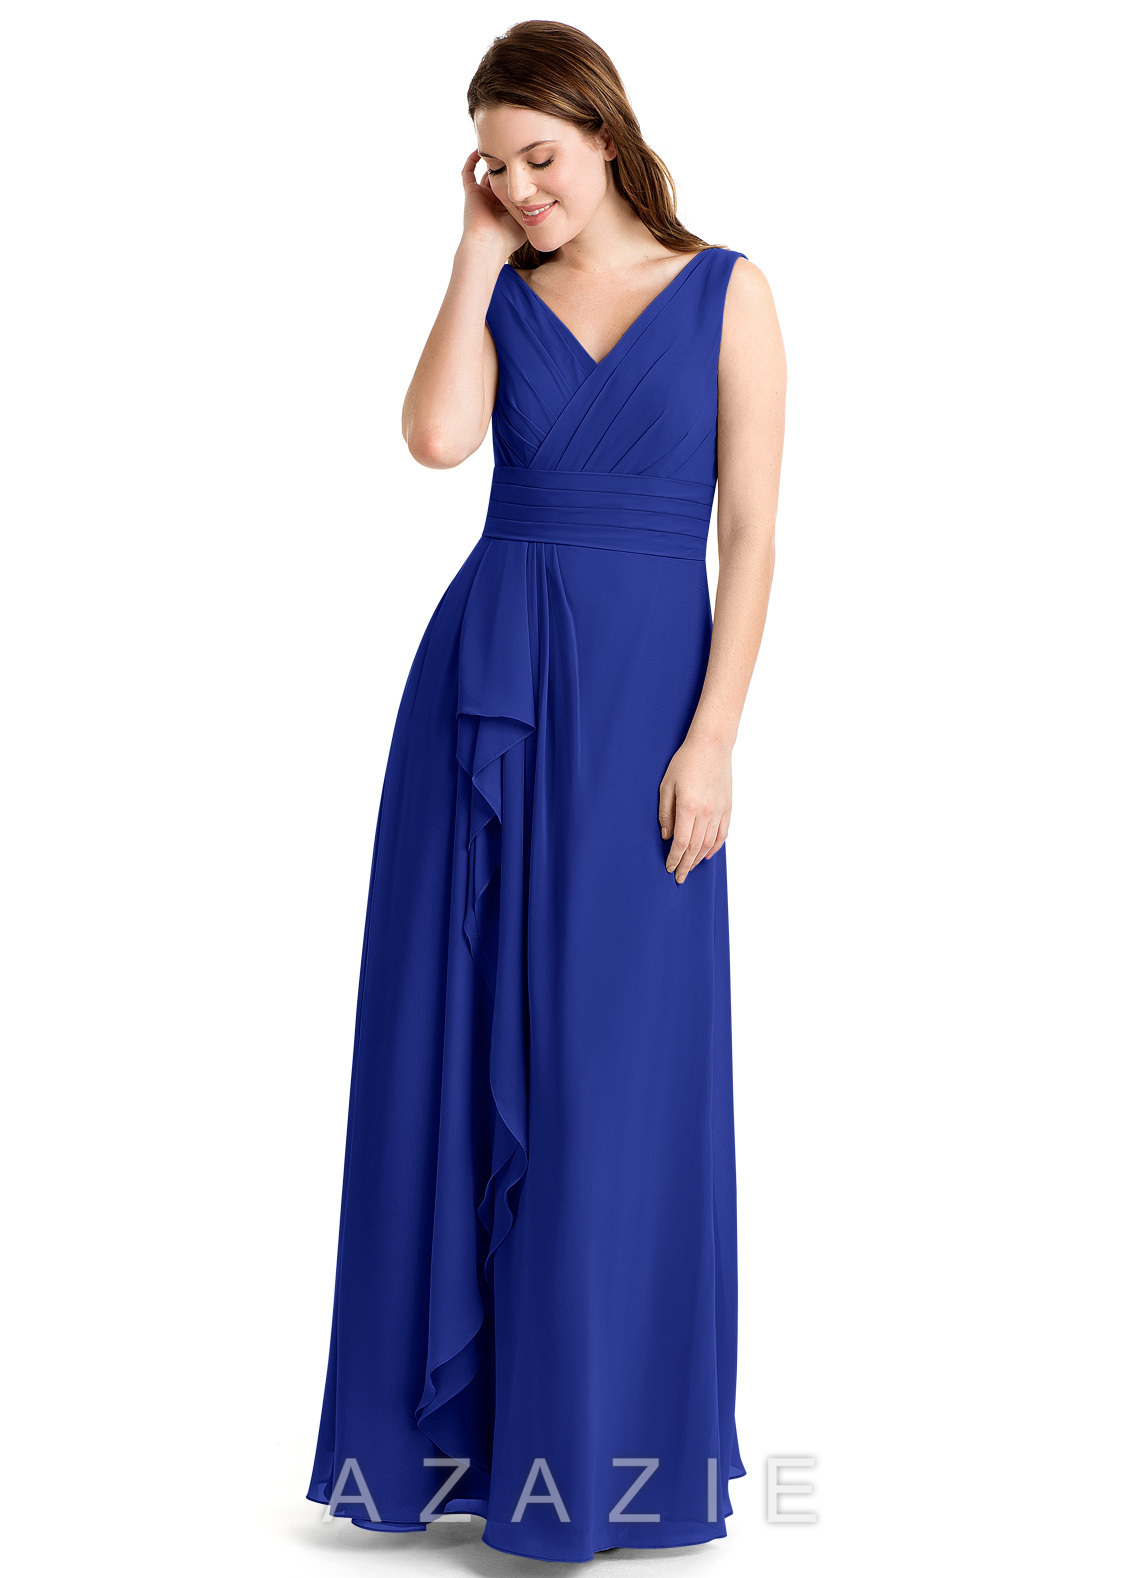 Azazie Julianna Bridesmaid Dress - Royal